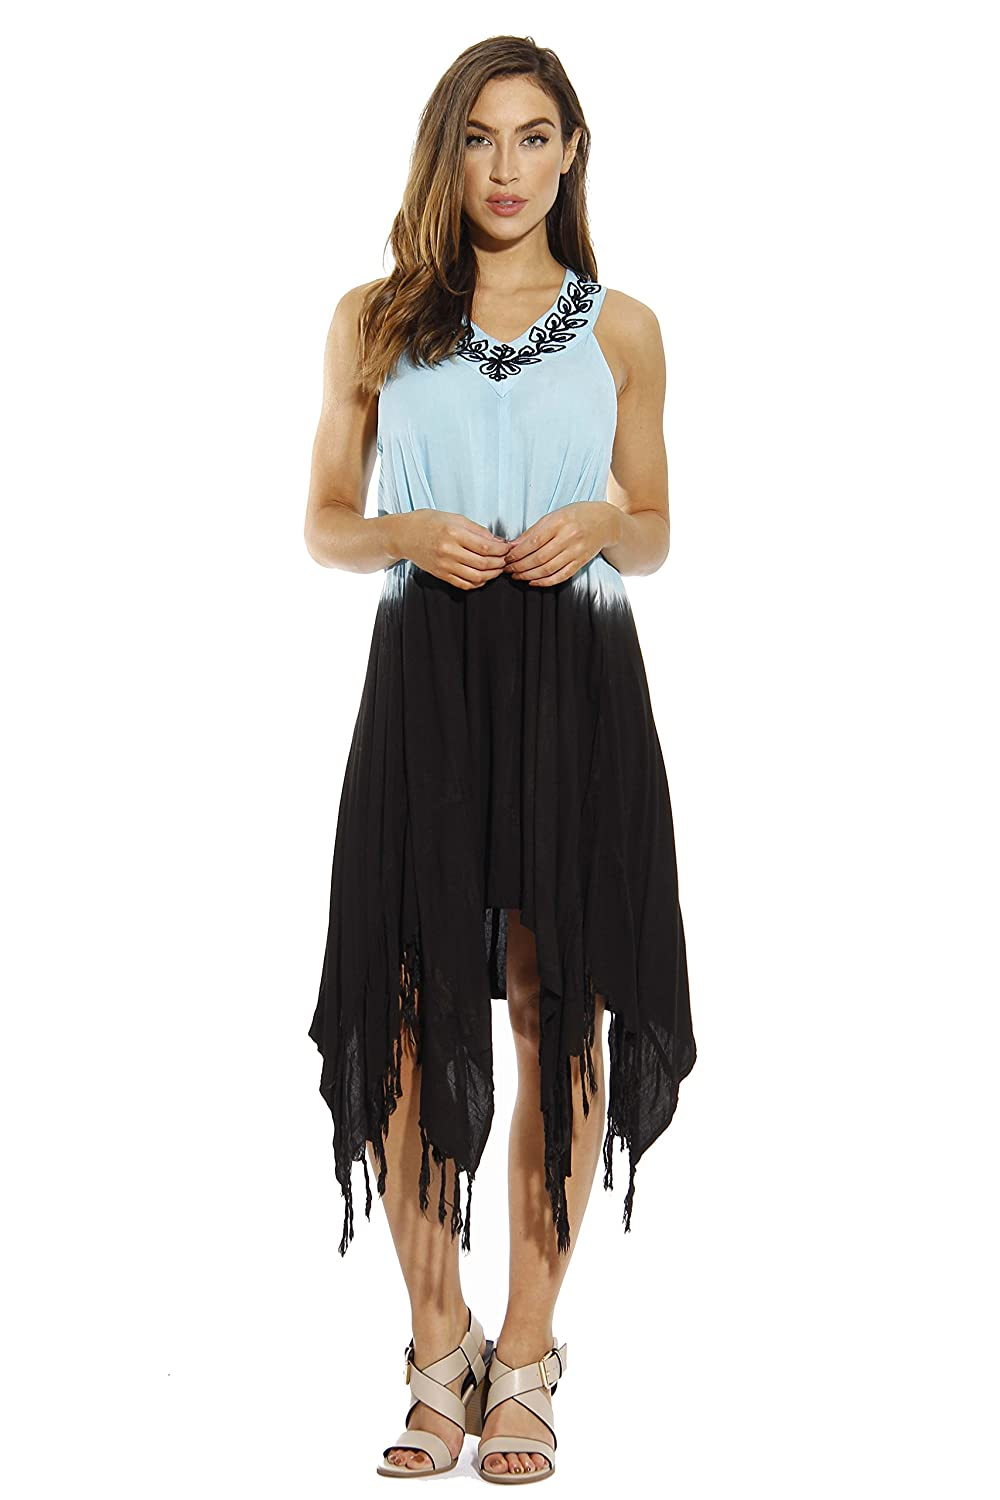 43f3cbeda21 SWITCH IT UP  You ll love the versatility of these summer casual dresses  with fringes. You can dress them up with wedges for that afternoon lunch